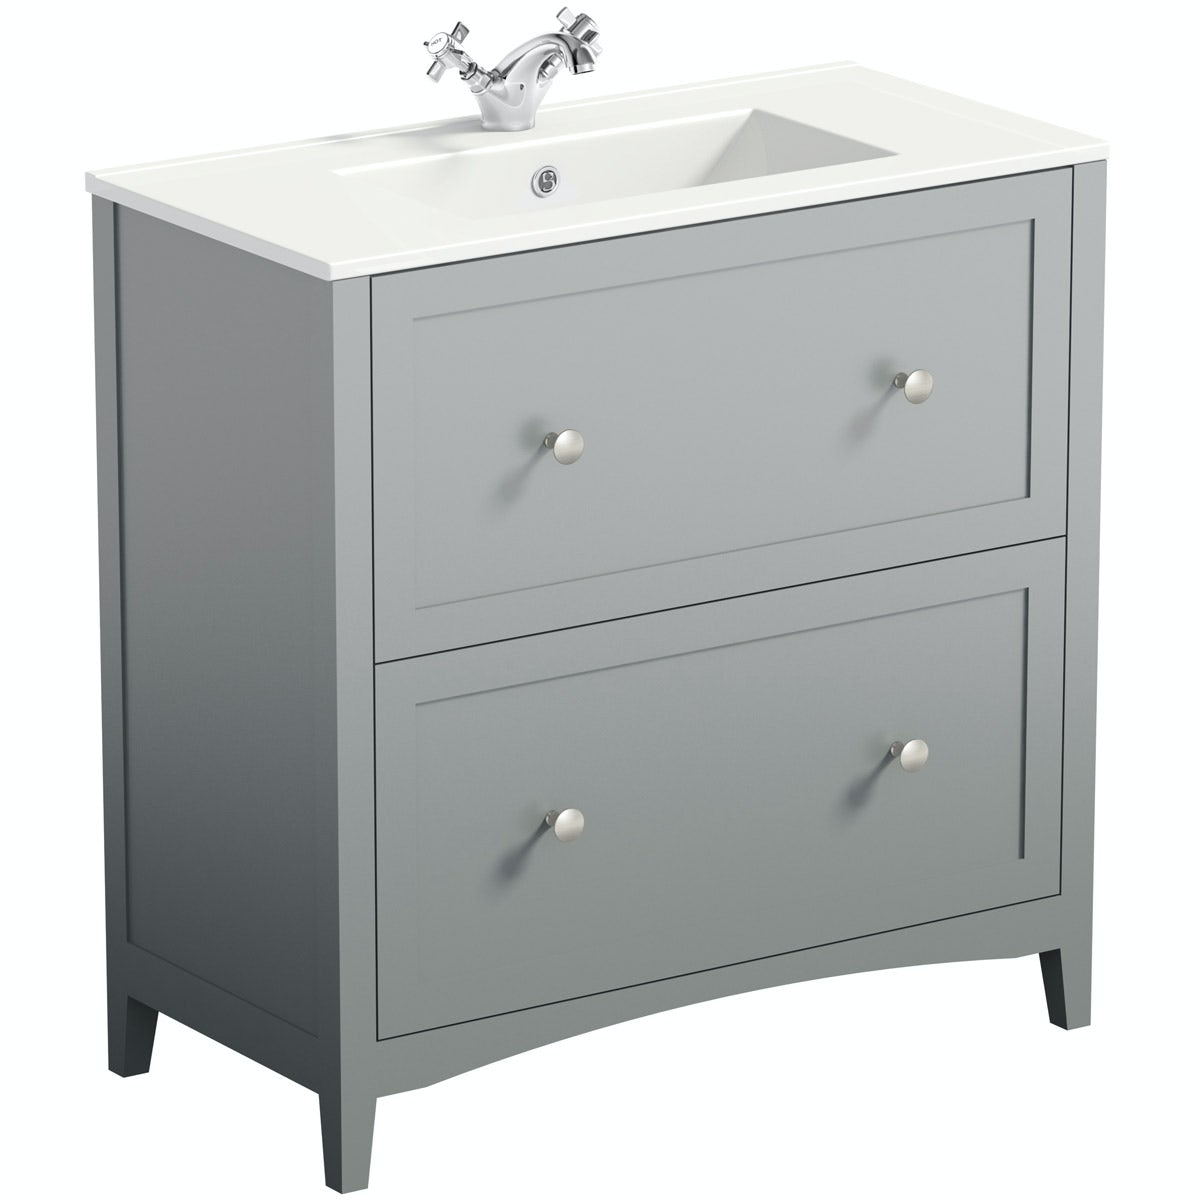 The Bath Co Camberley Grey Vanity Unit With Basin 800mm